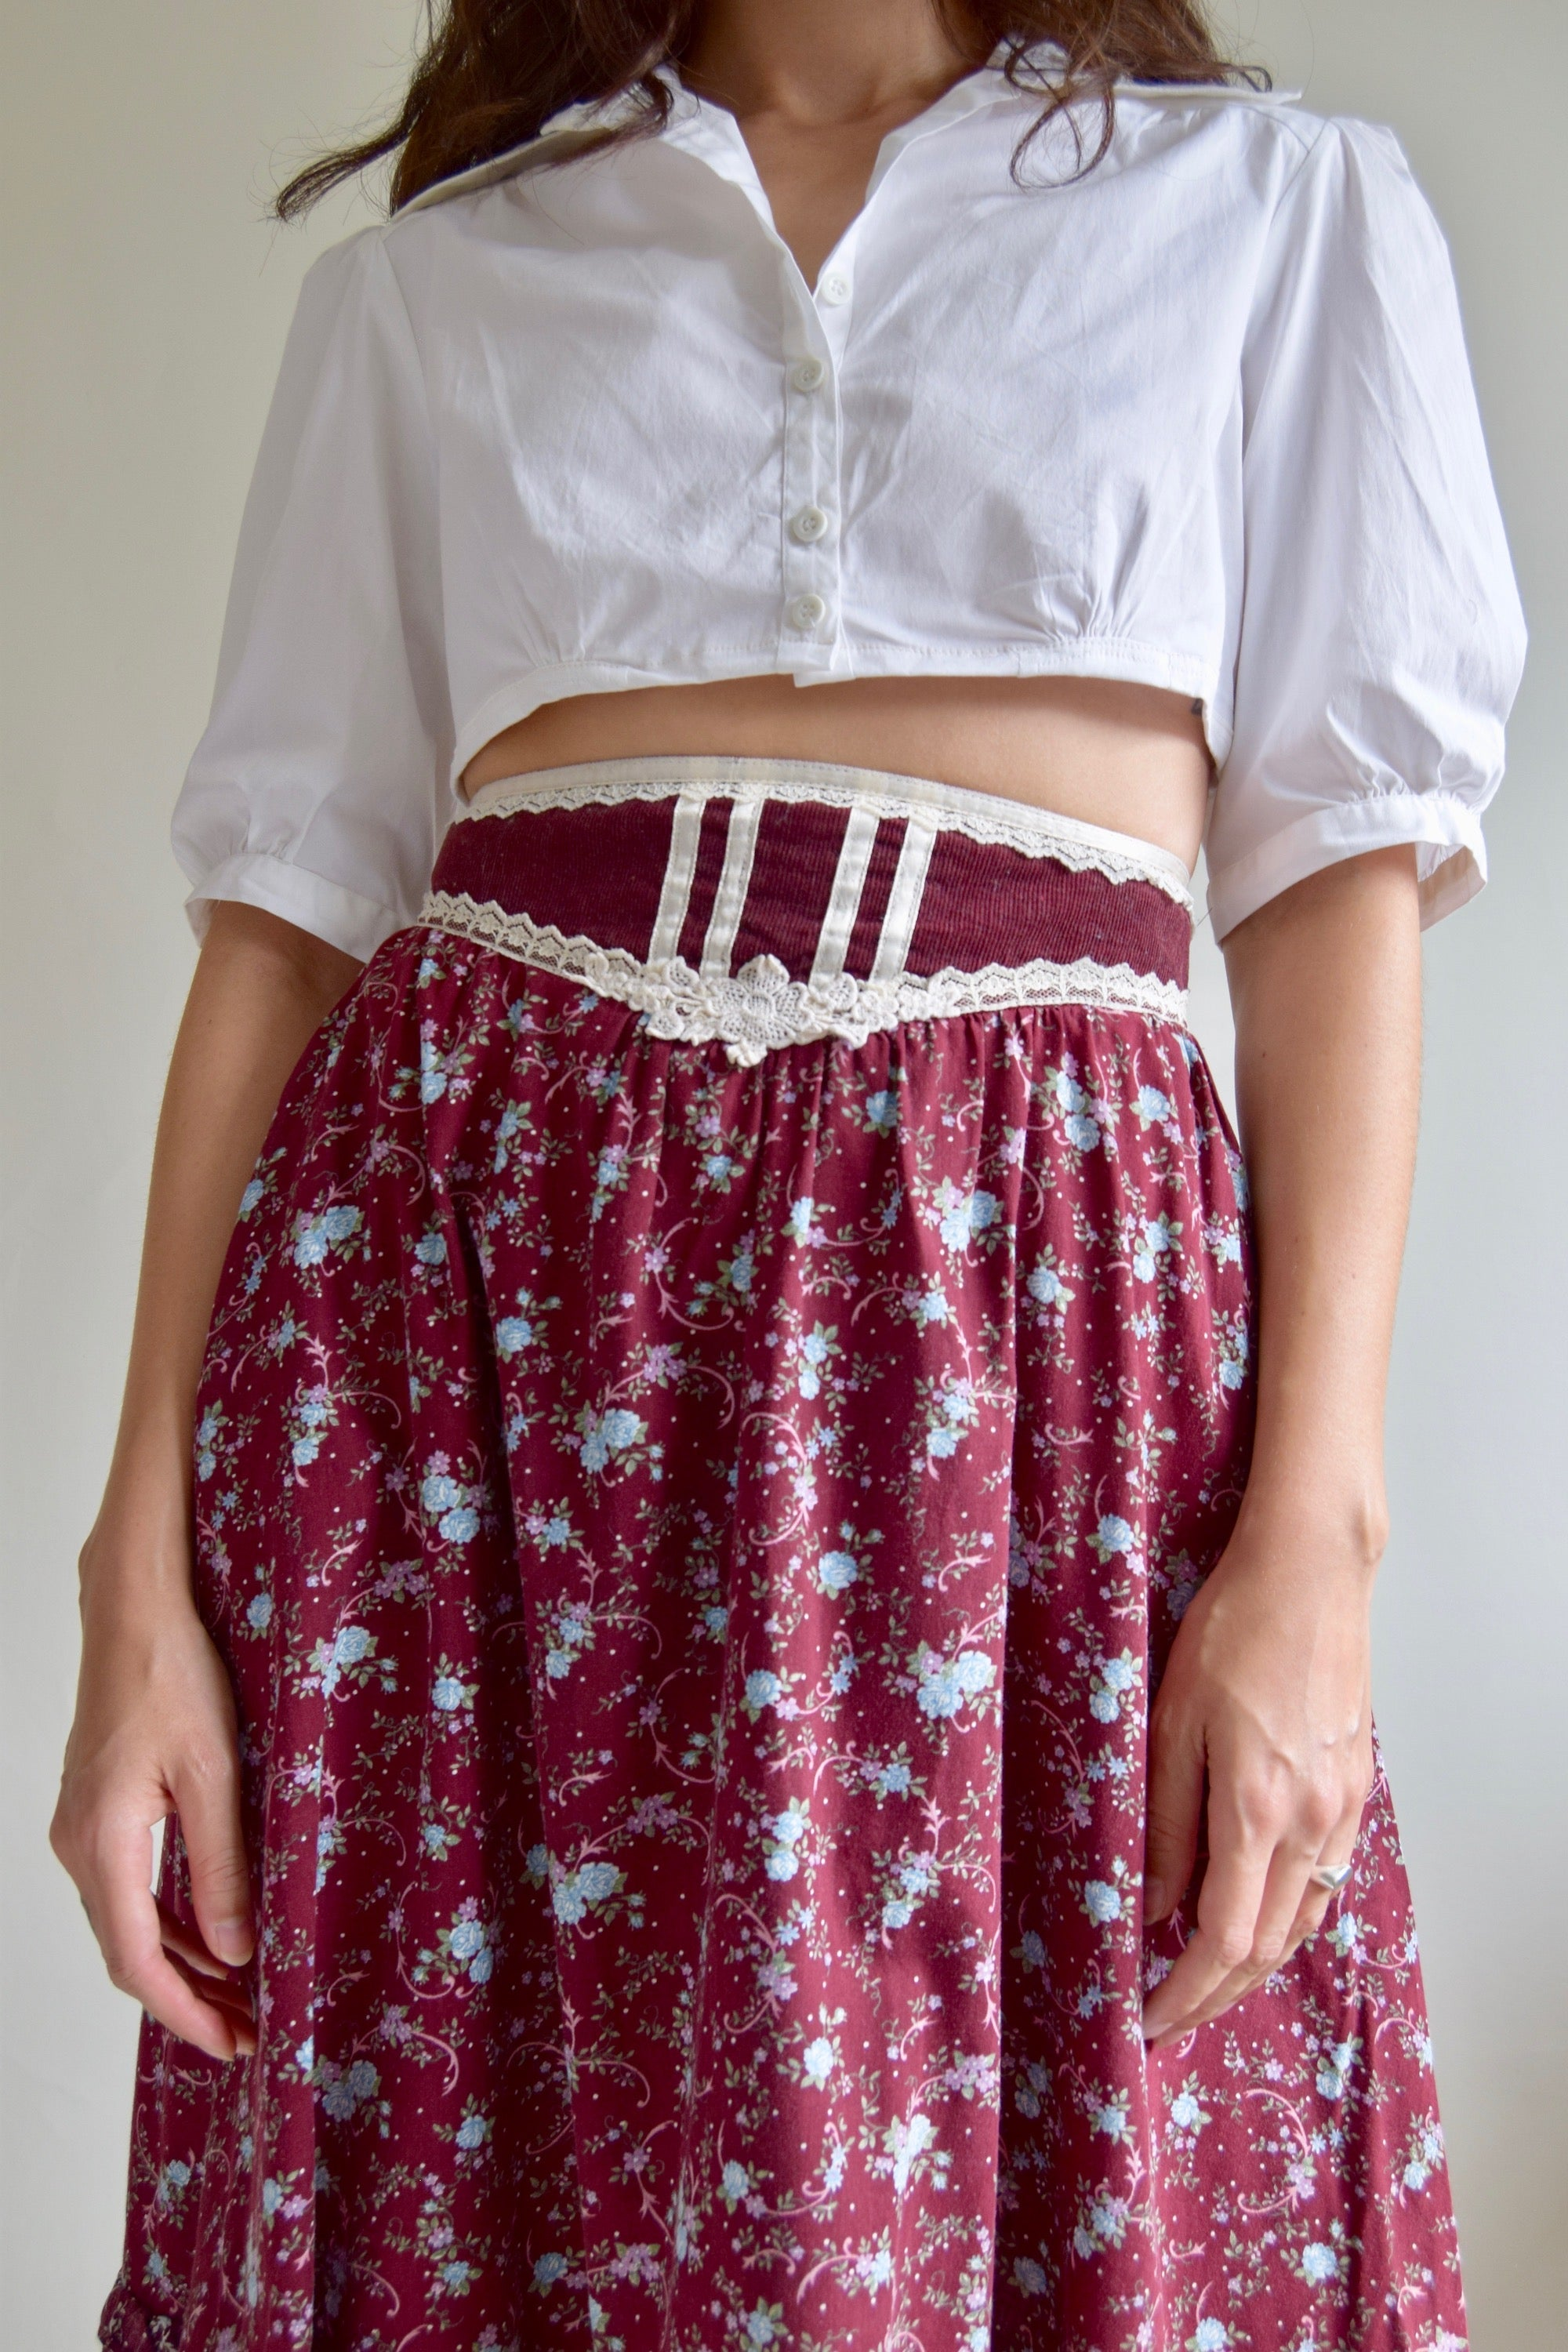 Vintage 1970's Ruffled Gunne Sax Floral Wine Skirt FREE SHIPPING